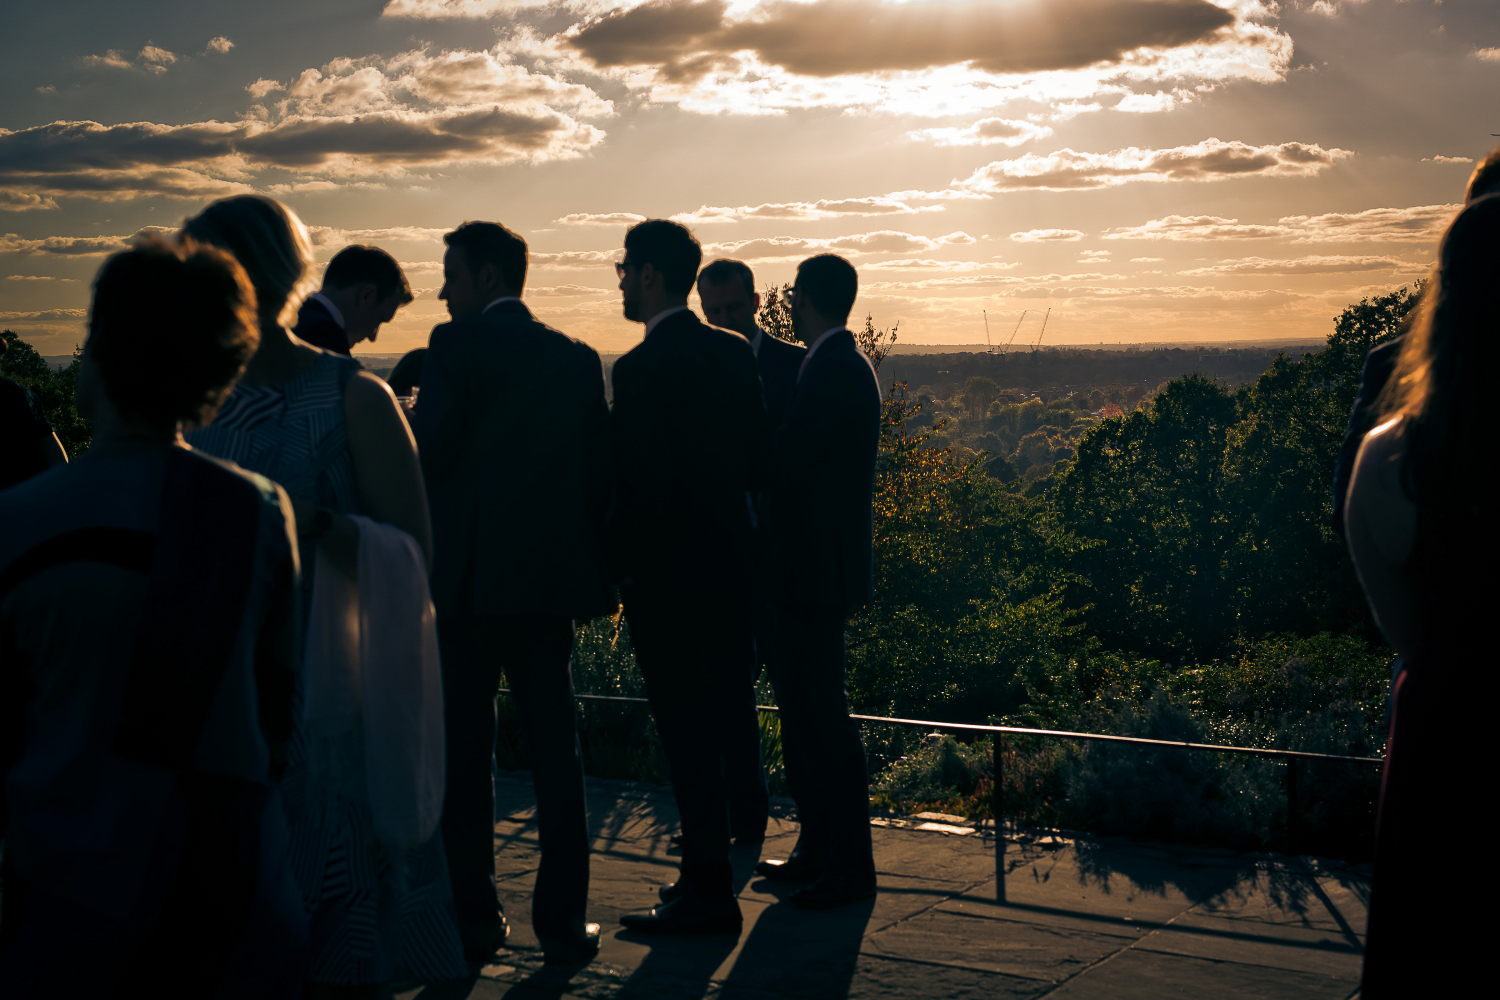 Mingling at a wedding as the sun begins to go down